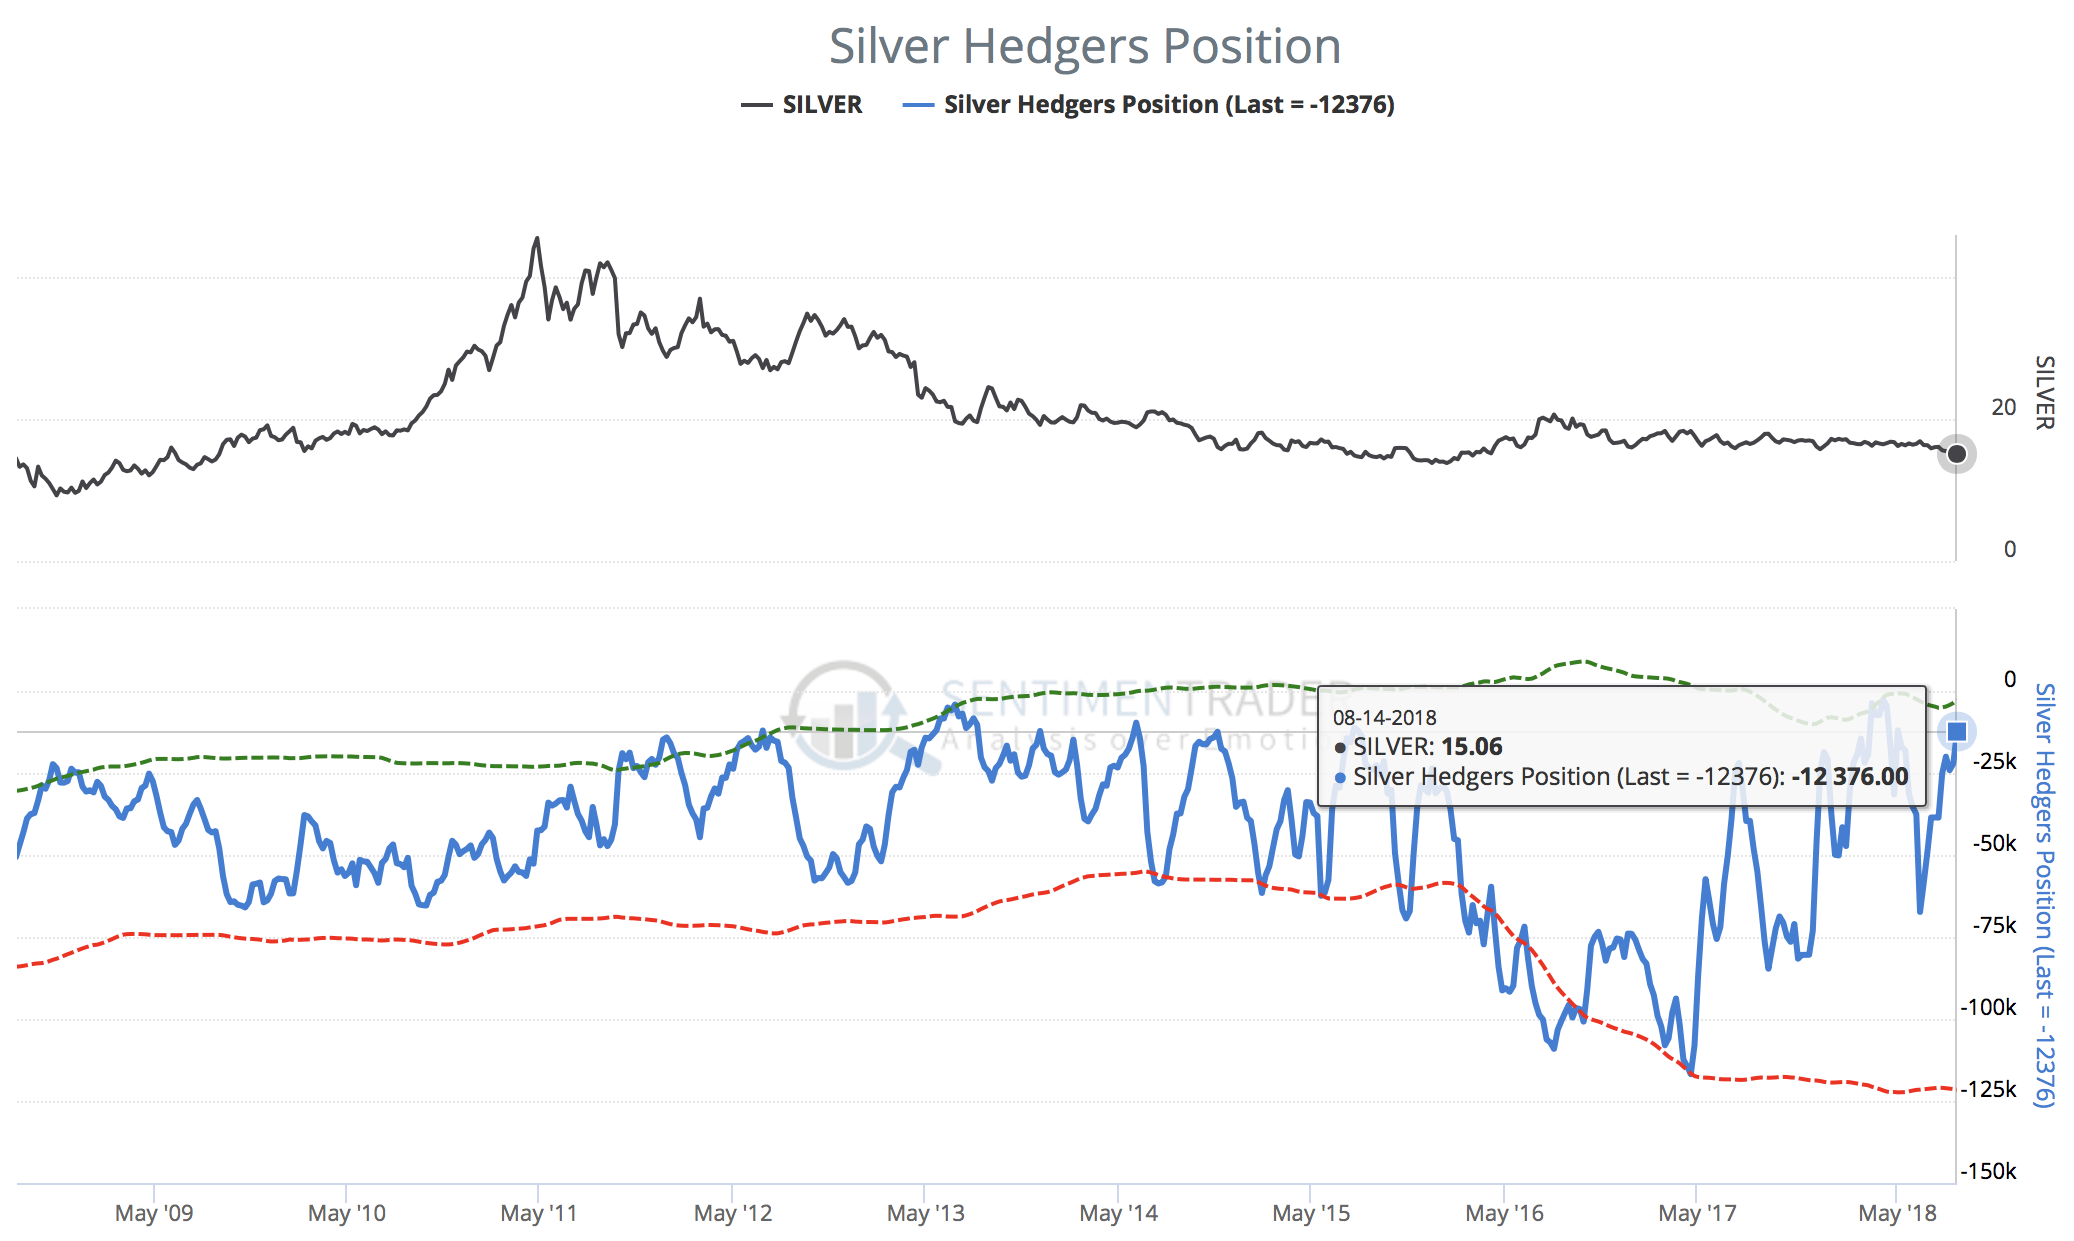 Silver Hedgers position at extremely low levels.